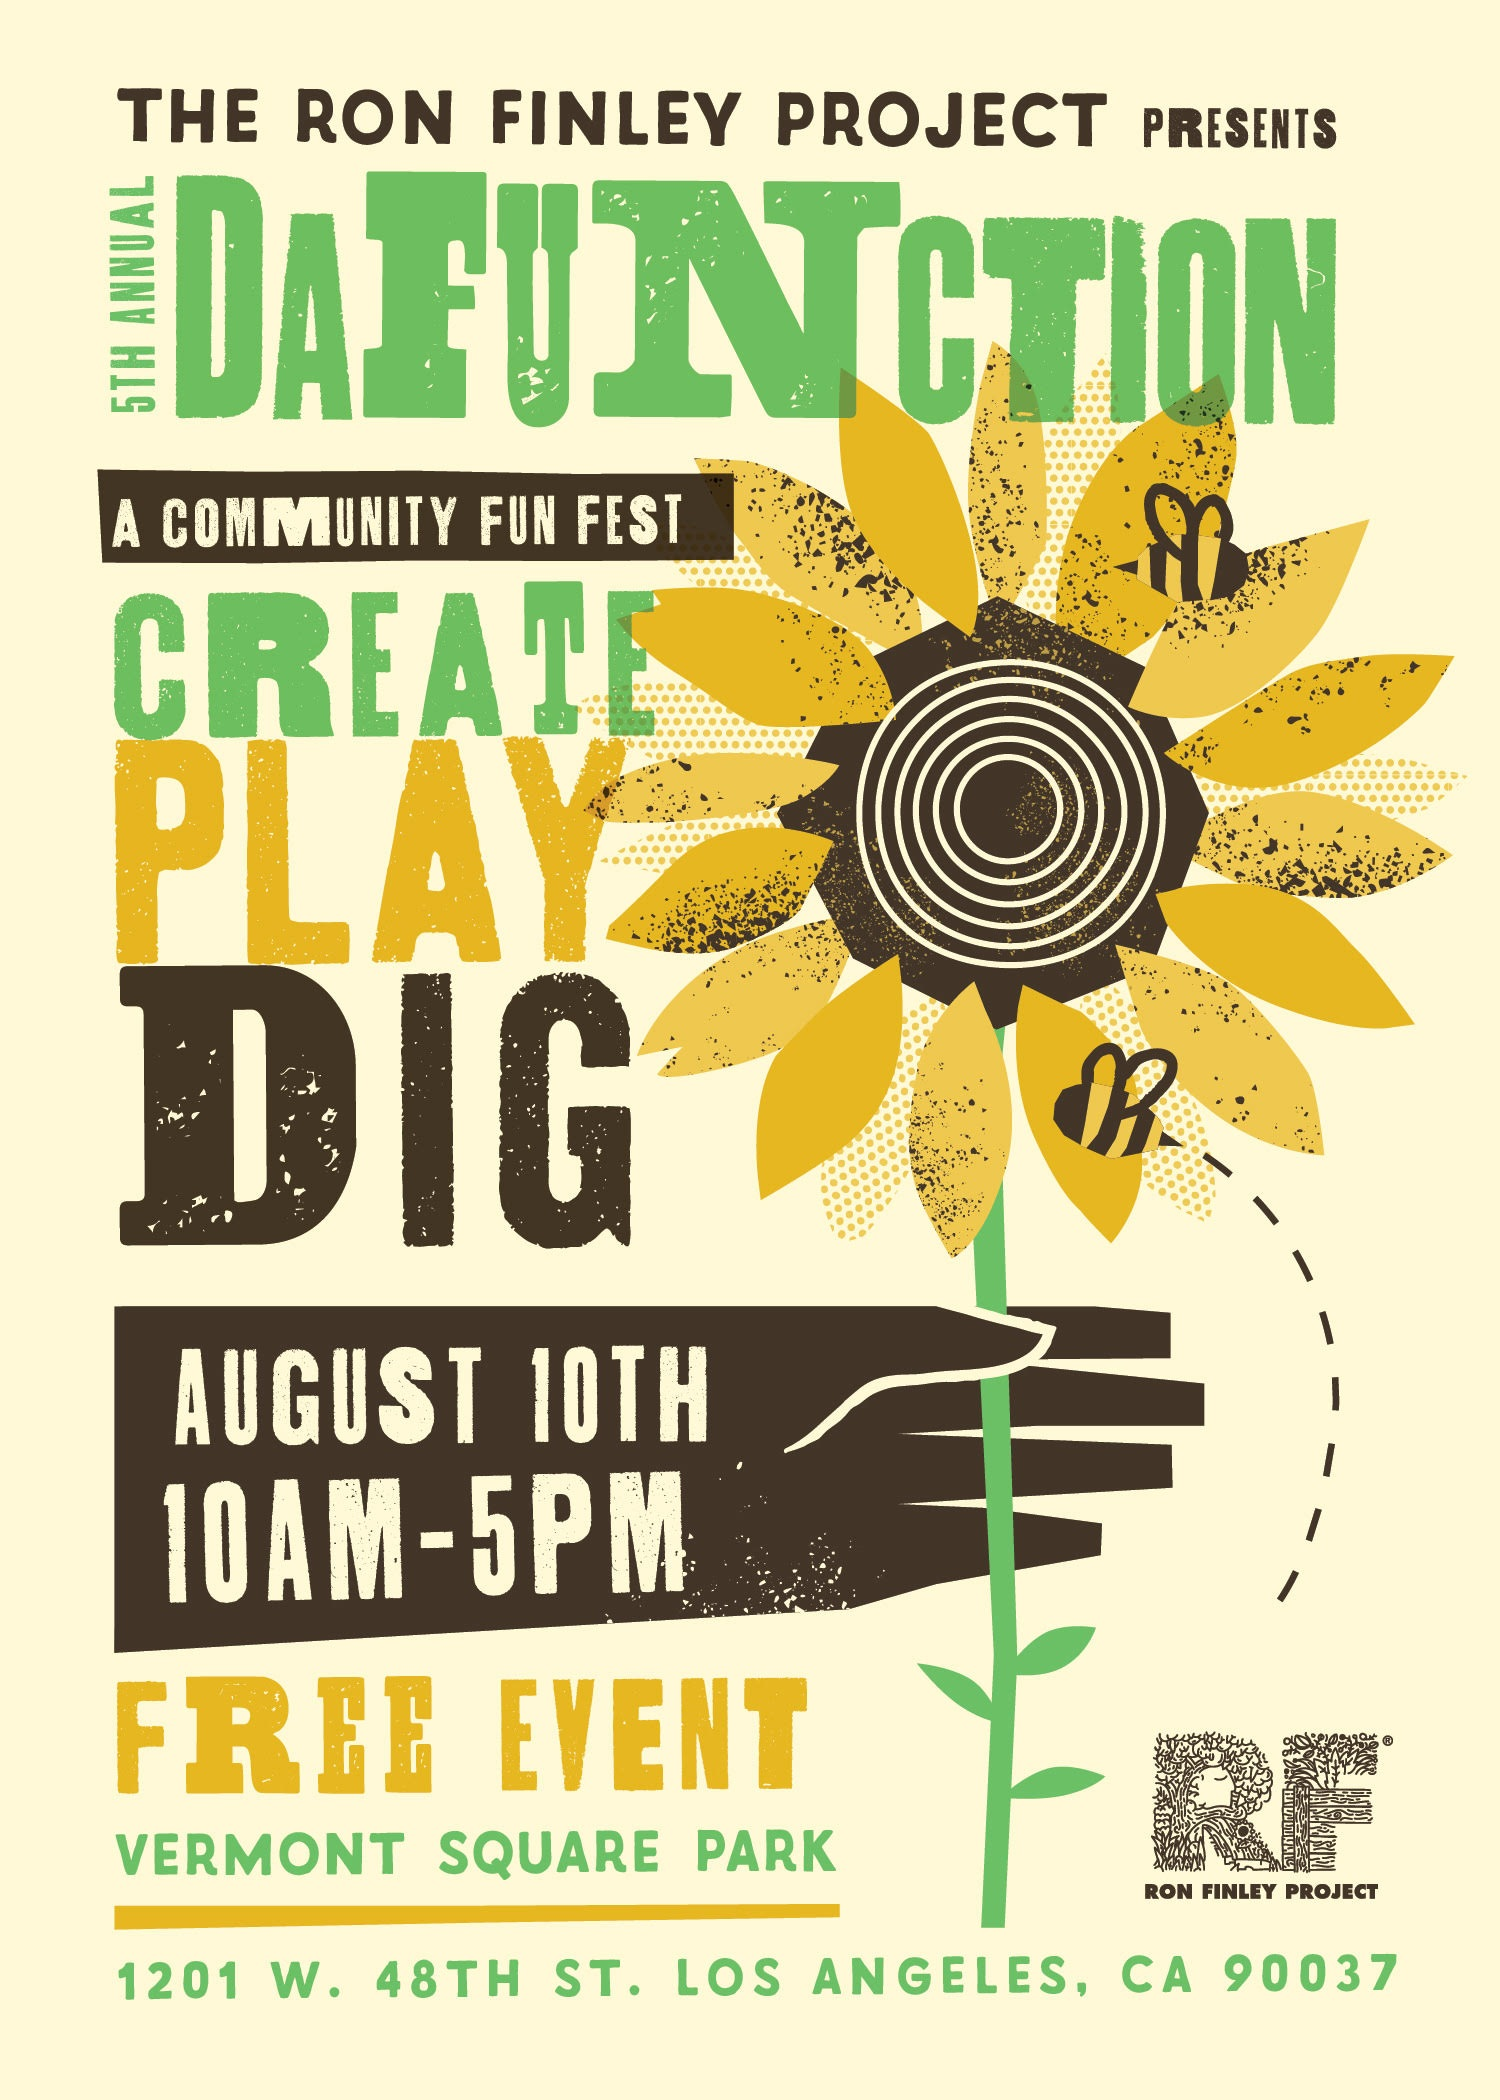 Da FUNction is a one-day community fun fest full of art, activities, music and workshops designed to bring a wide range of LA communities together around a lifestyle that is beautiful, healthy and full of life-giving culture. Da FUNction is a FREE, family-friendly event.  RSVP HERE